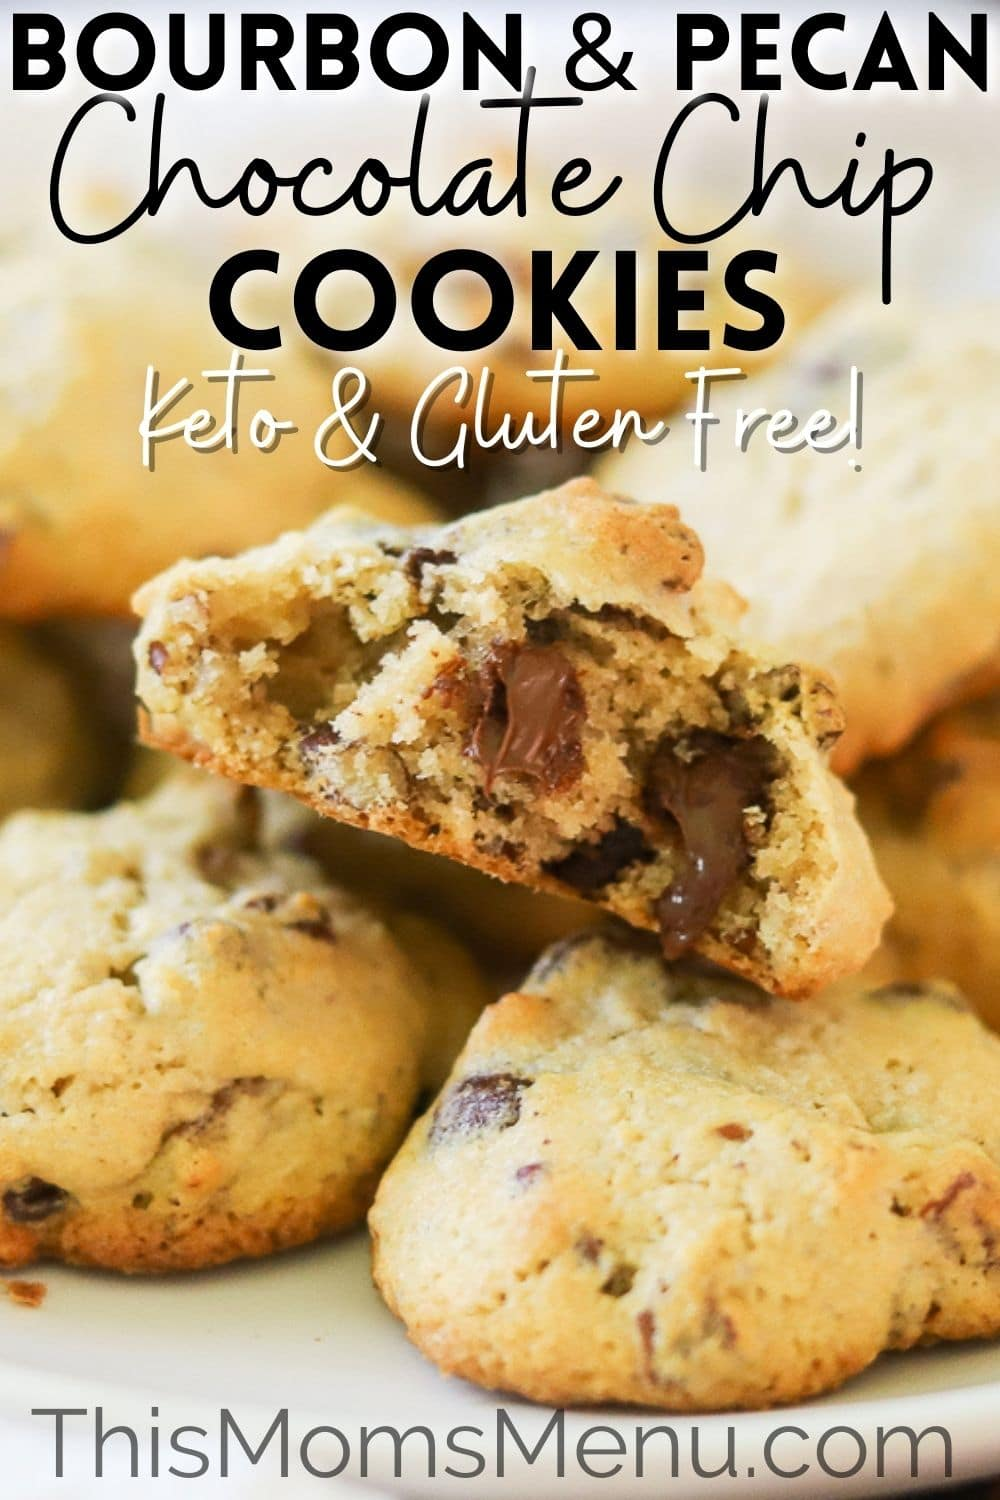 """keto cookies with chocolate, pecans, and bourbon stacked on a white plate. The top cookie has one bite taken, exposing melted chocolate inside the cookie. This image also has a text overlay that says """"Bourbon and Pecan Chocolate Chip cookies, keto & gluten free"""" in black and white lettering."""